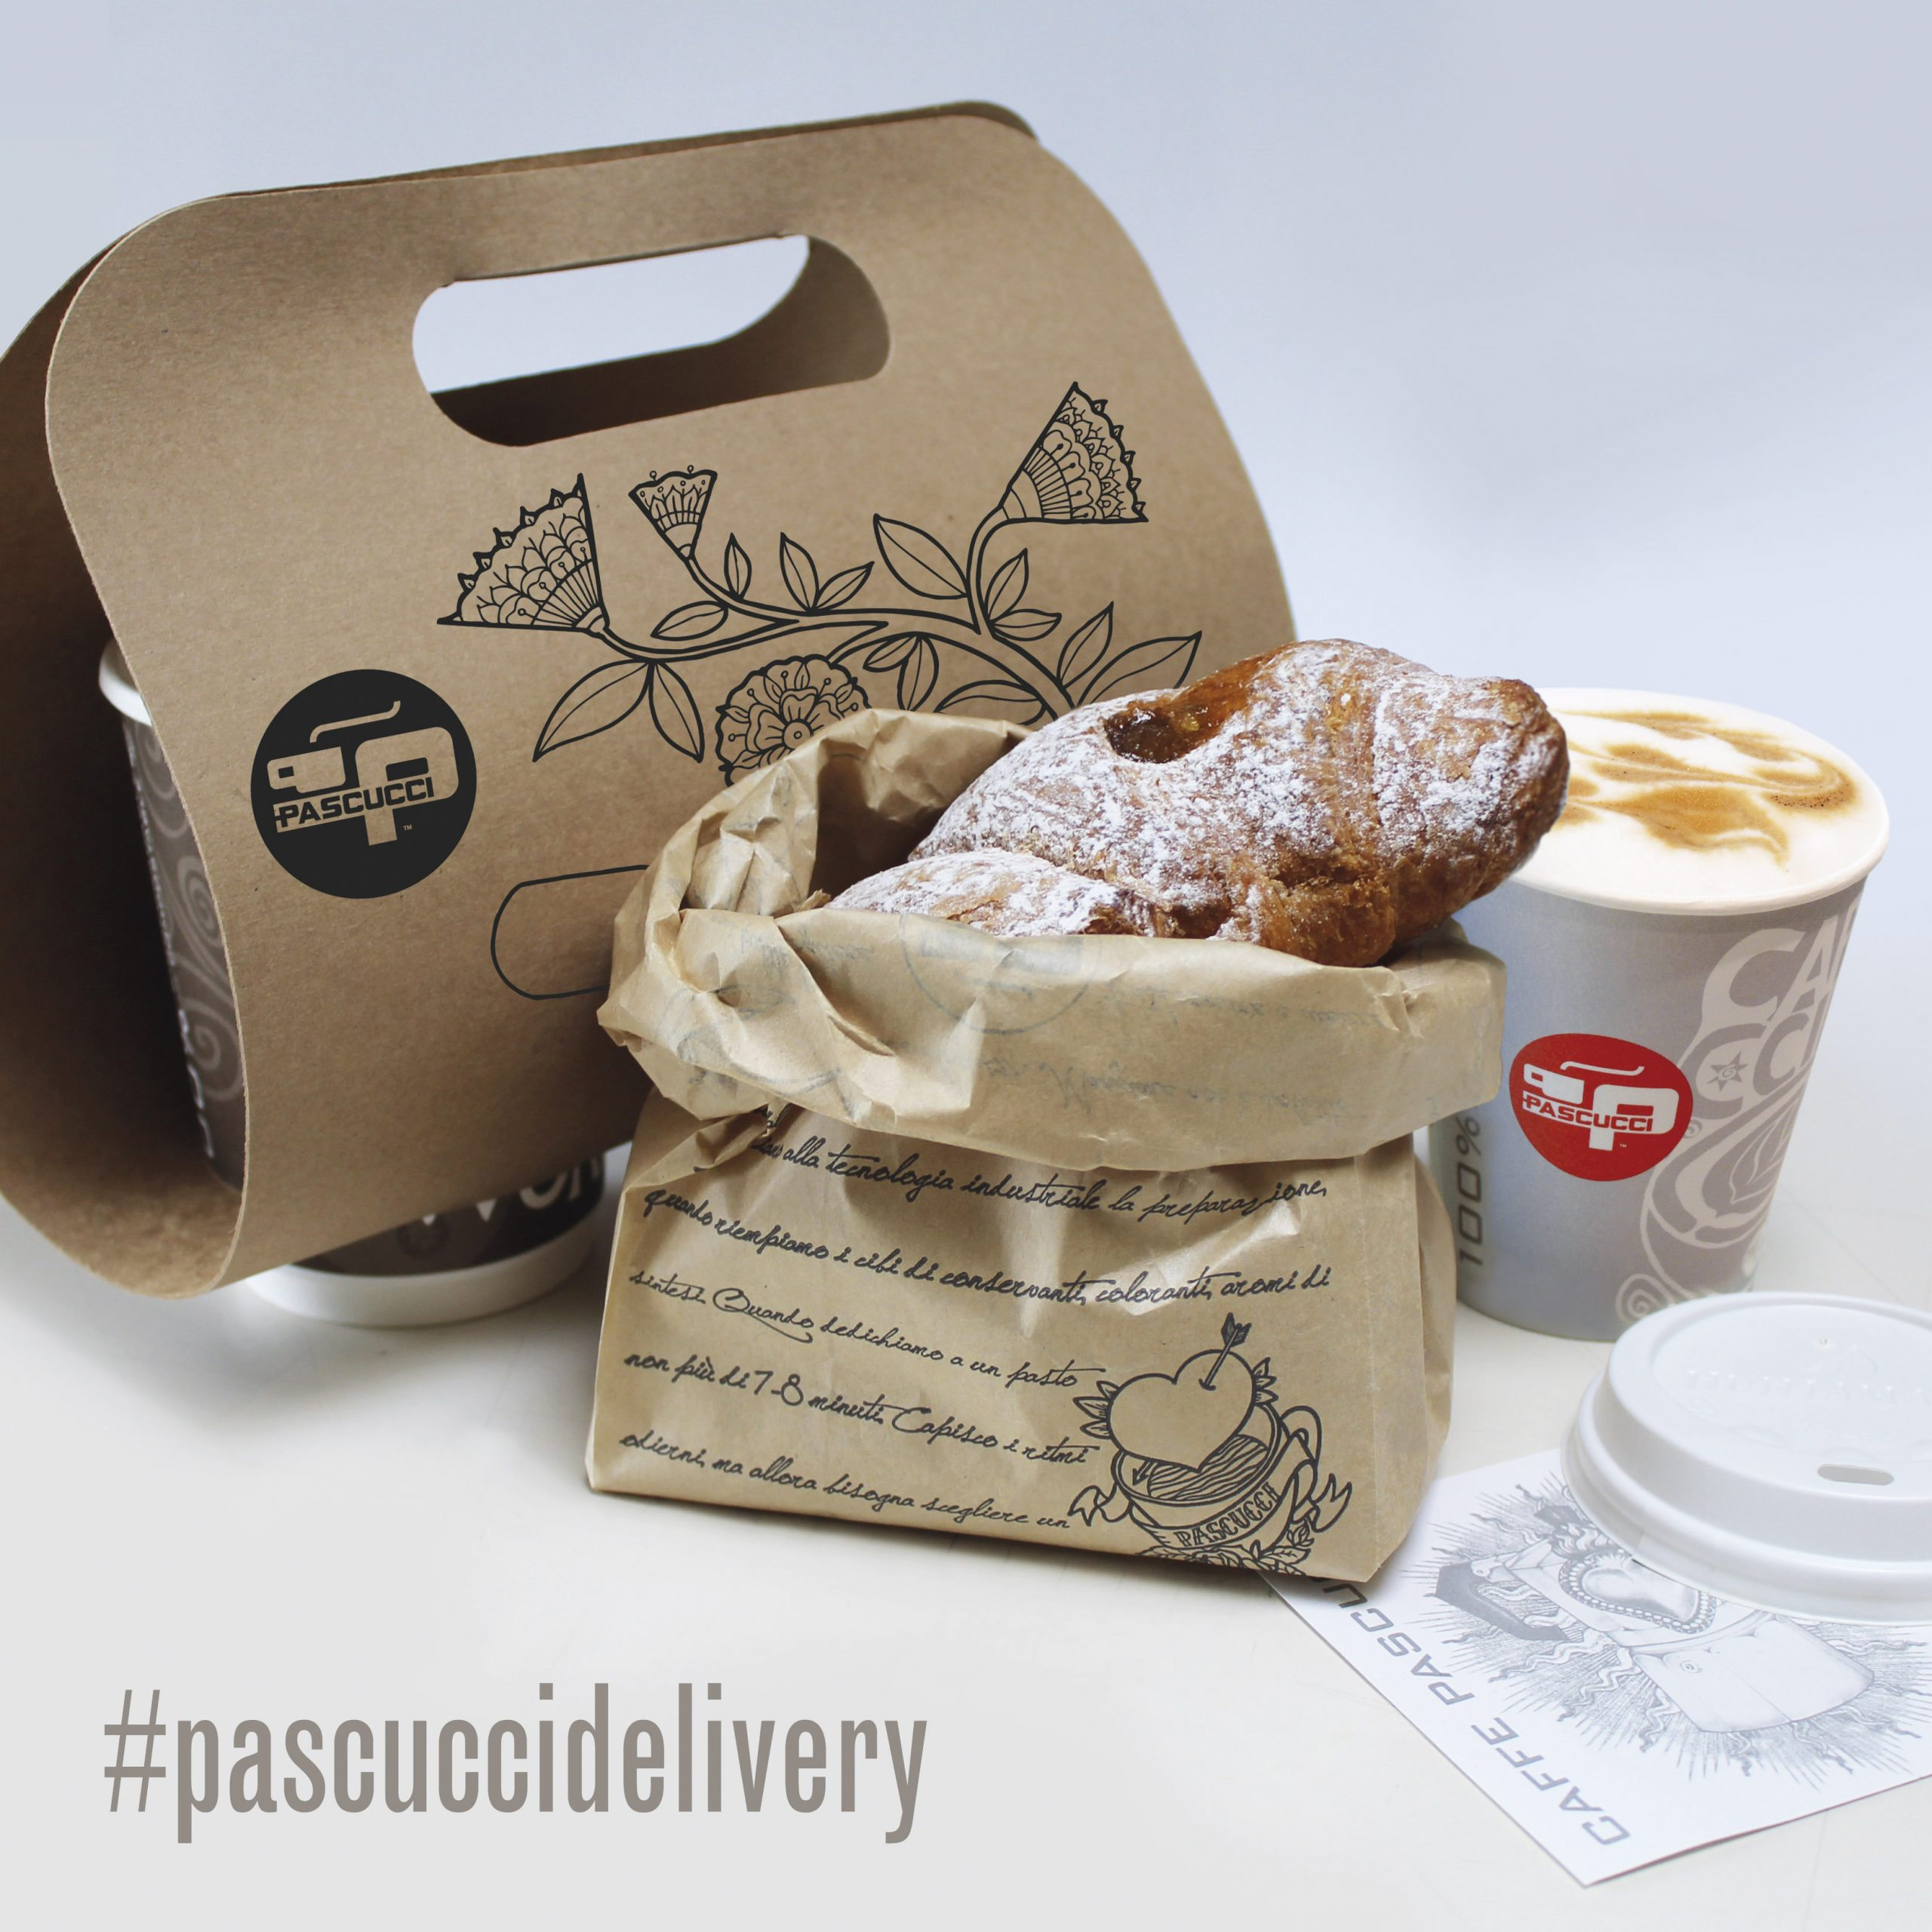 Pascucci delivery take away